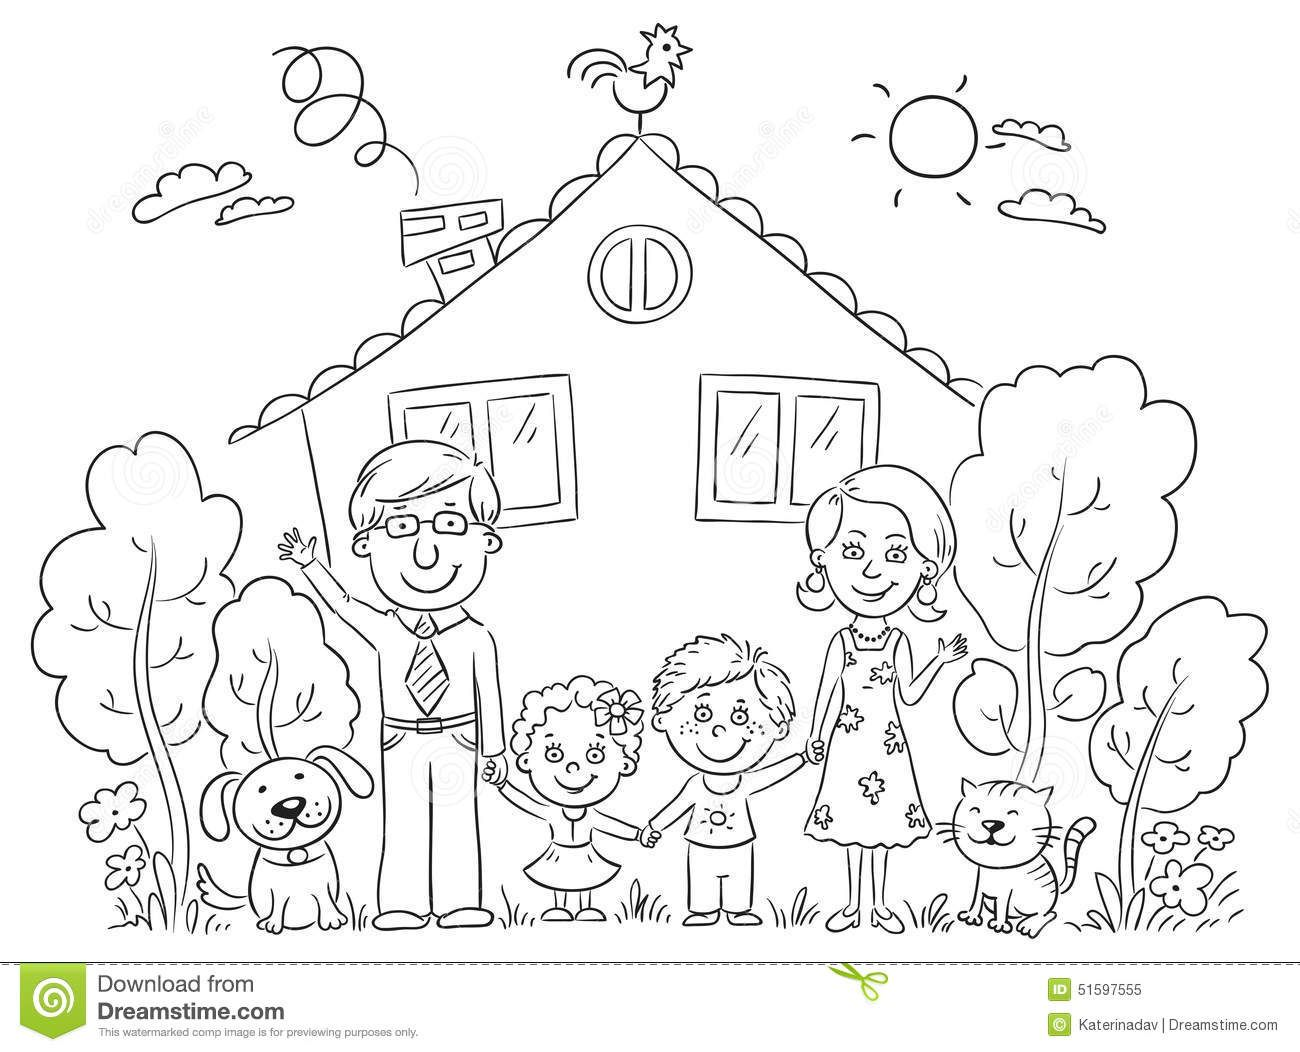 Little individual kids clipart black and white image black and white download free clipart picture of my house and family black and white outlines ... image black and white download